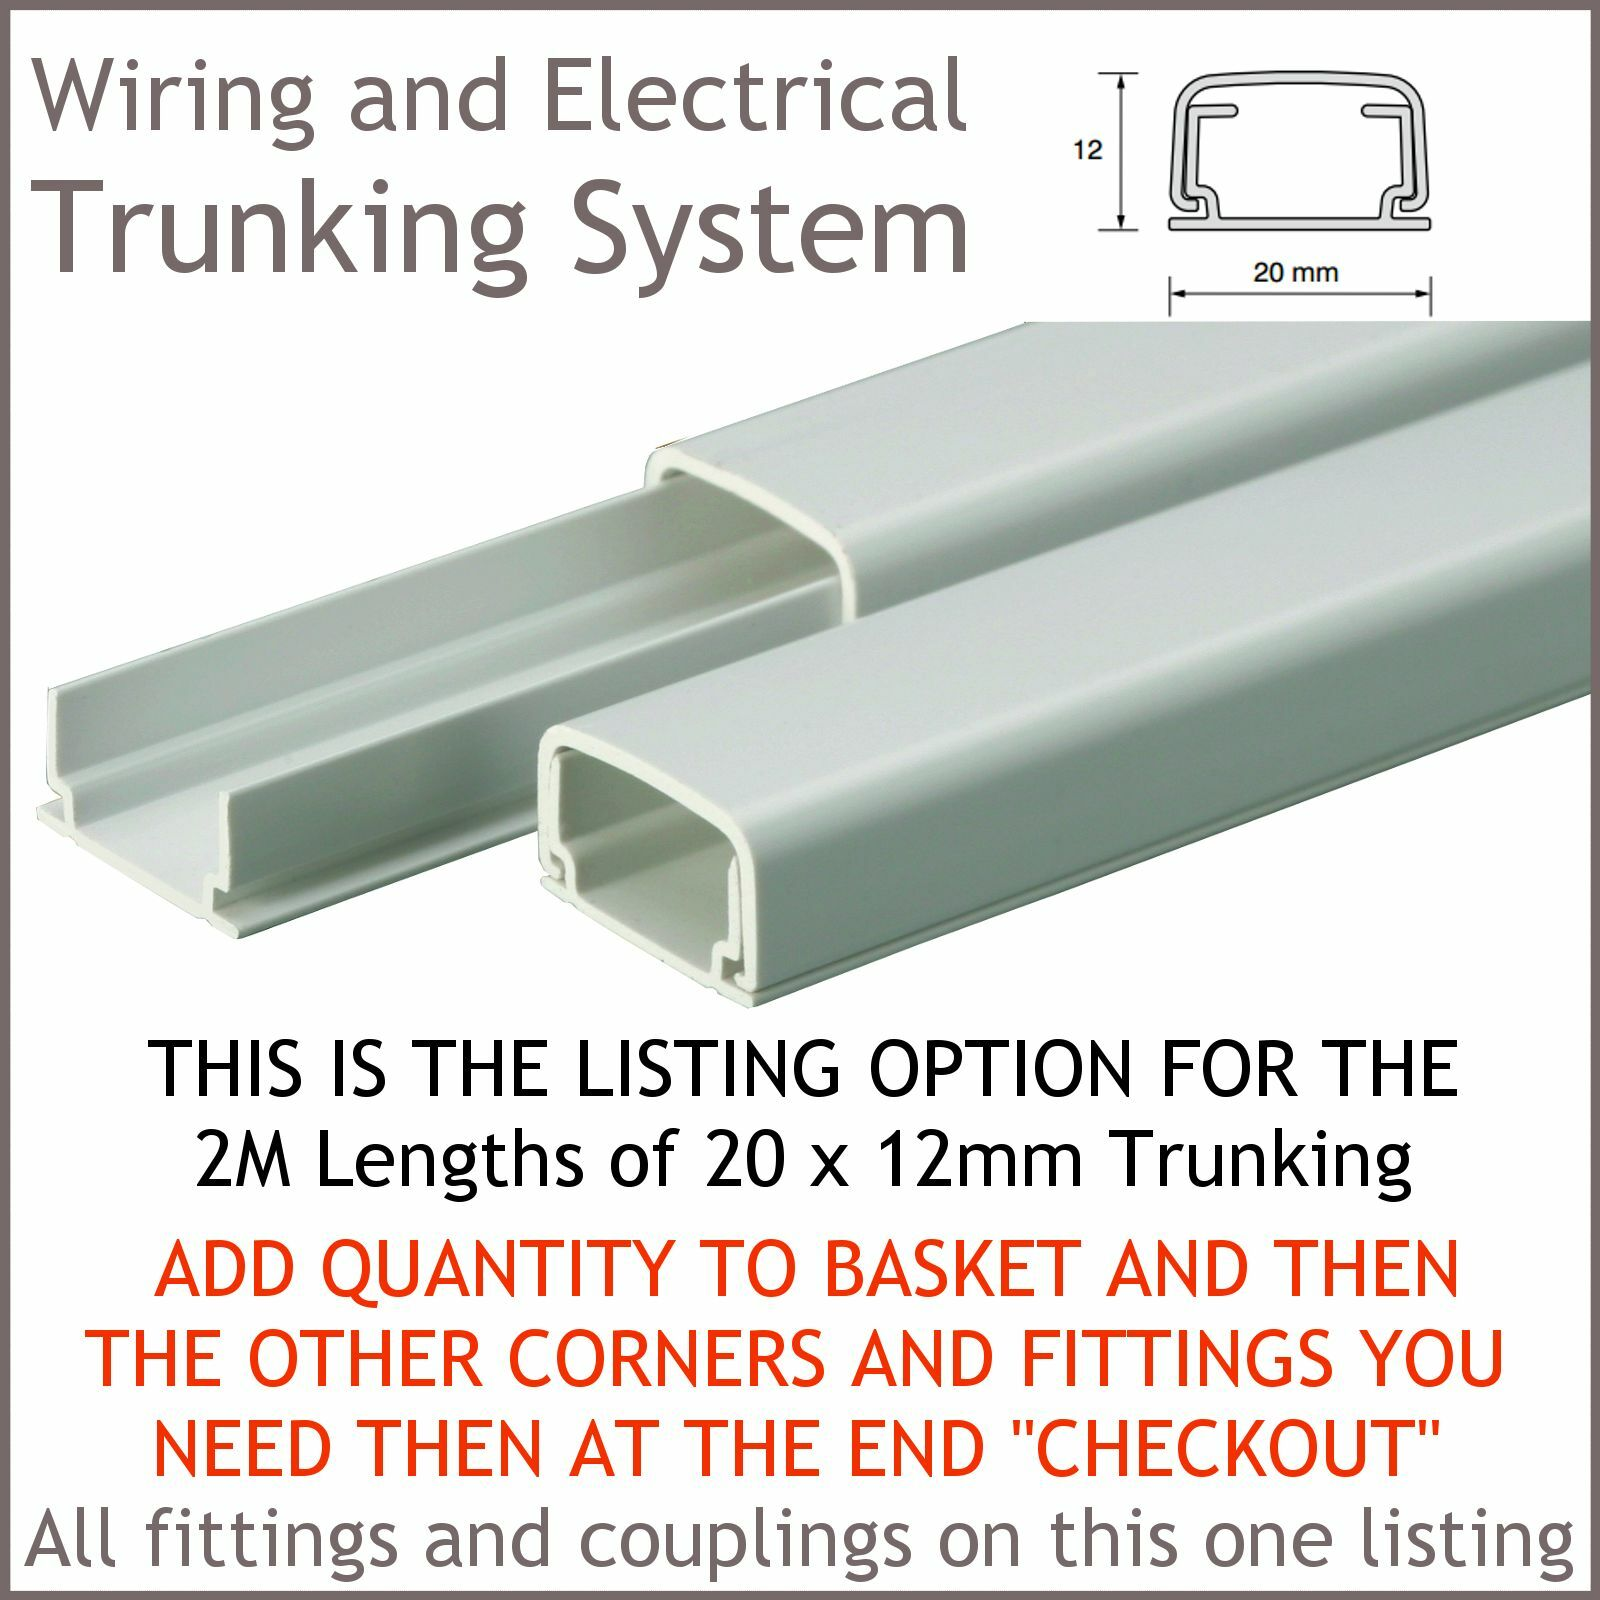 20 X12mm TRUNKING SYSTEM. Product Information  sc 1 st  eBay : trunking system of wiring - yogabreezes.com